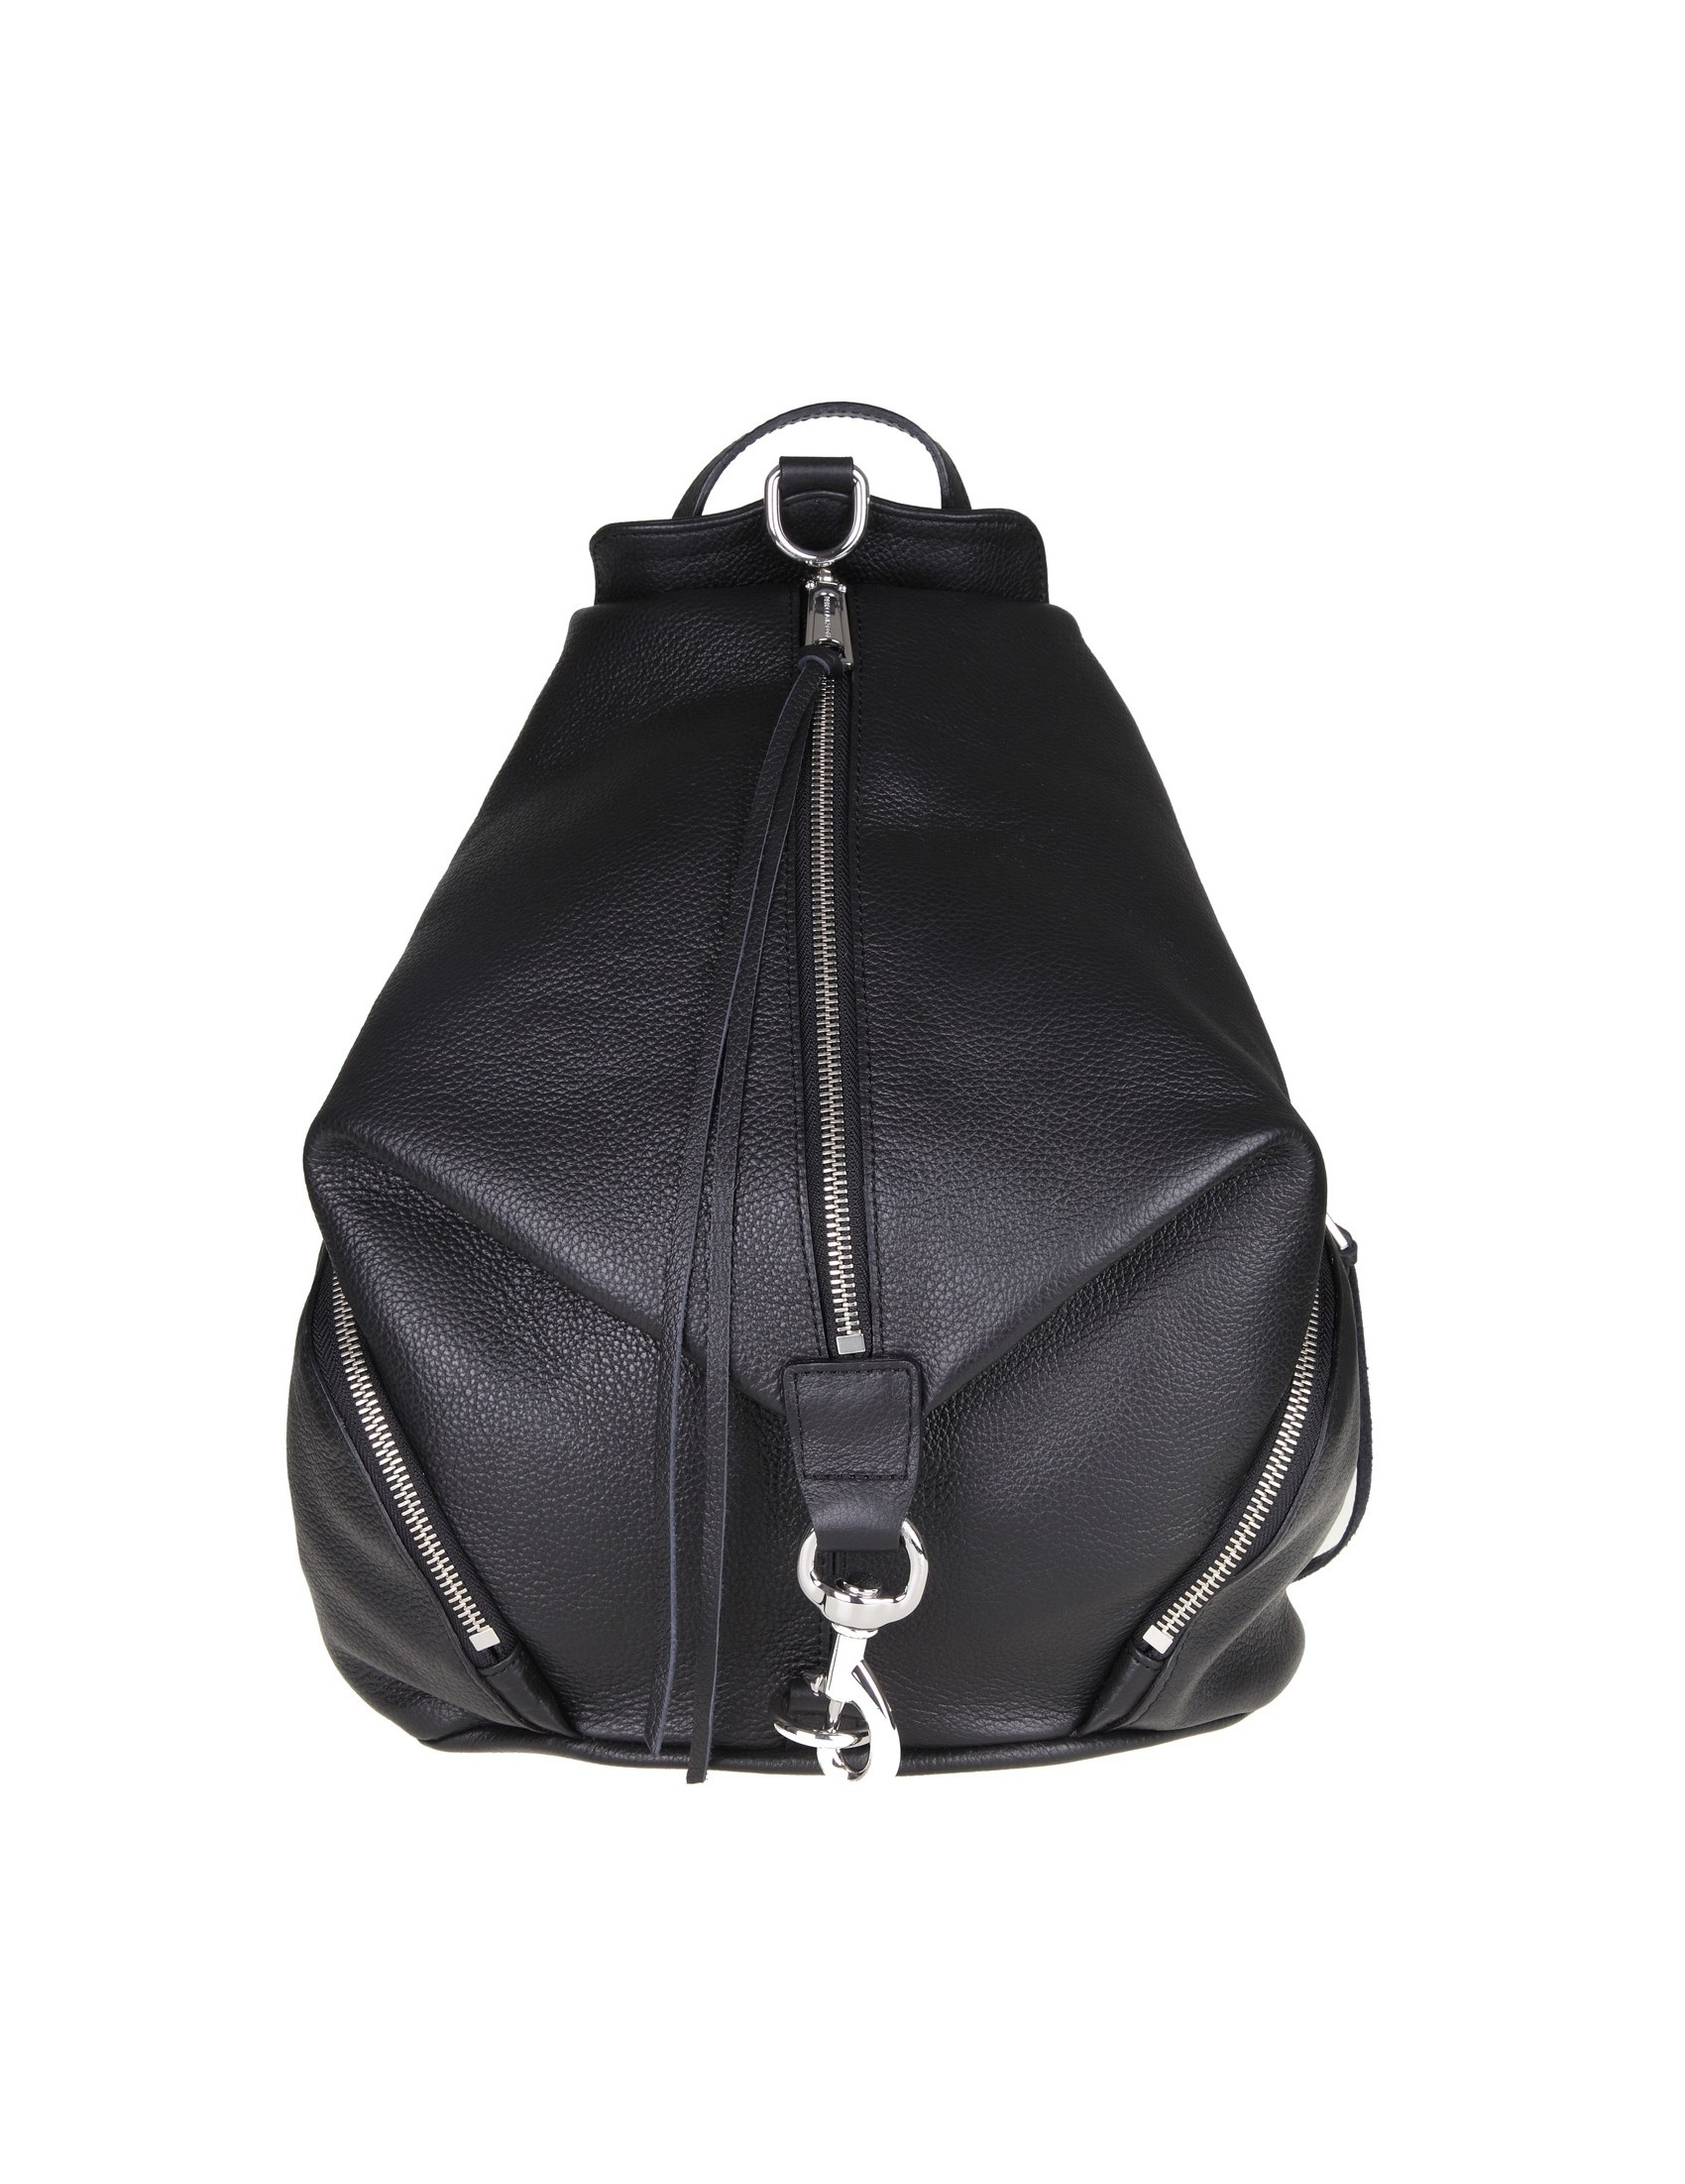 3046f0d0f REBECCA MINKOFF JULIAN BACKPACK IN BLACK LEATHER NEW WOMAN COLLECTION